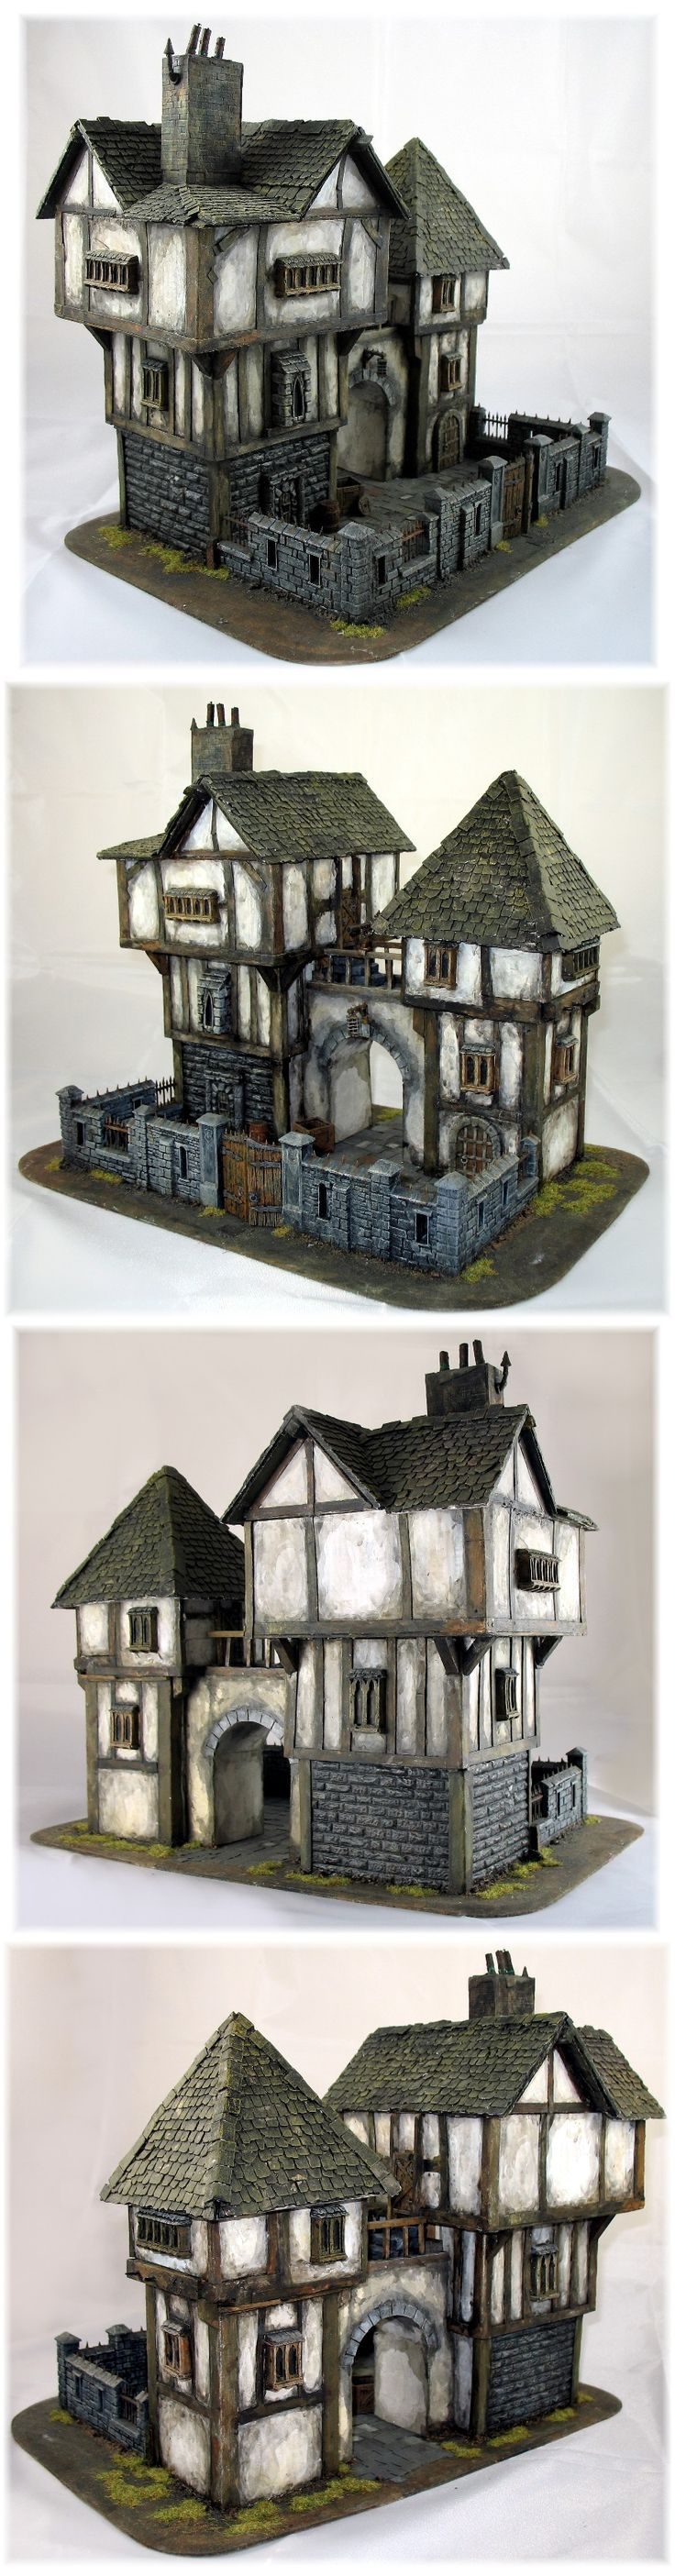 These are great... but alas, scaled at 1/6th the size of dollhouse minis (1 inch = approx. 6 feet).  I'd love to see something like 'em at 1:12 scale.